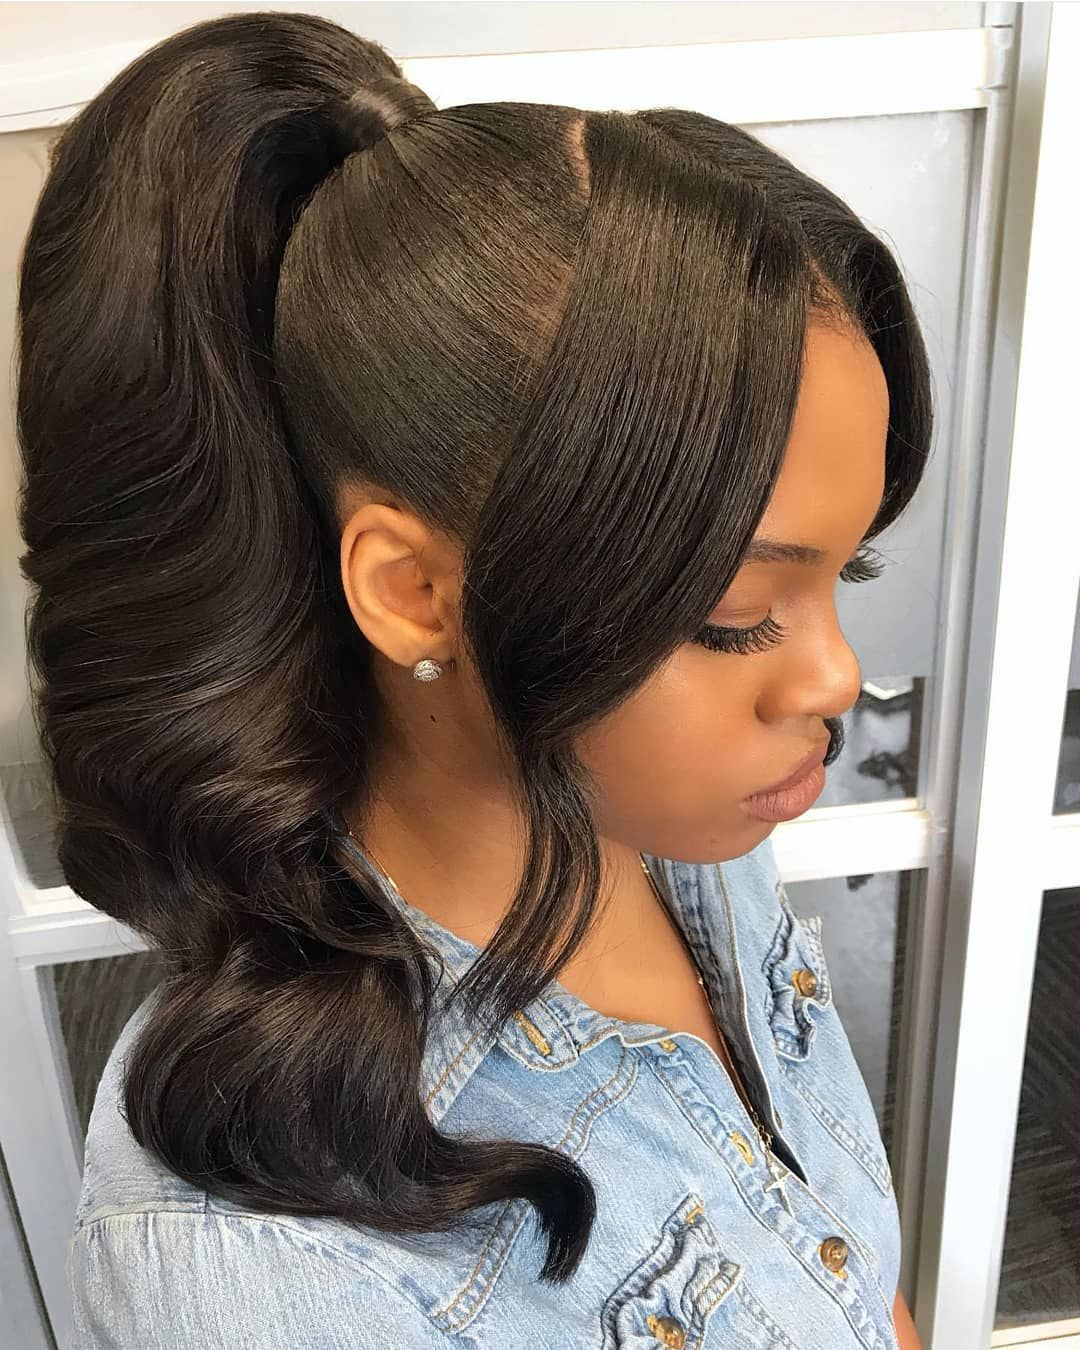 Pin By Christian Tolbert On I Love In 2019 Hair Beauty